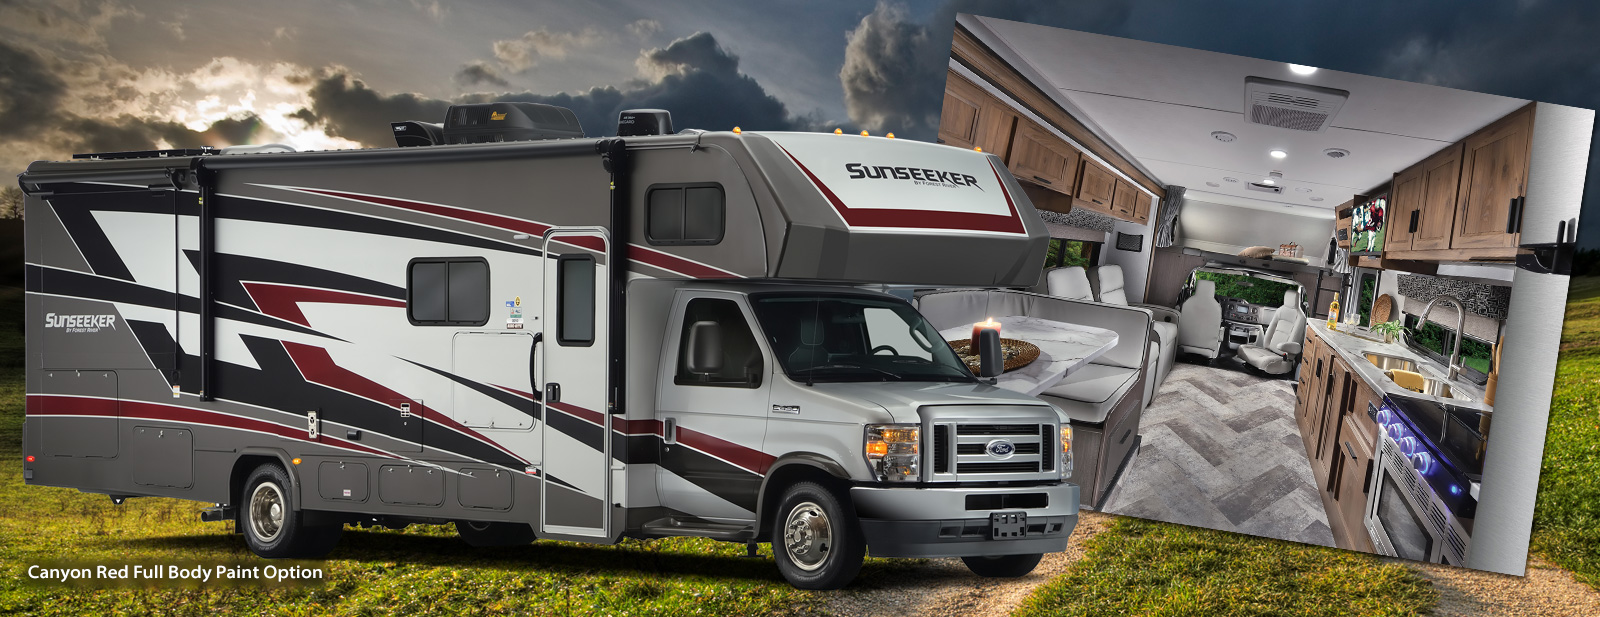 Sunseeker Cl C Motorhomes by Forest River RV on